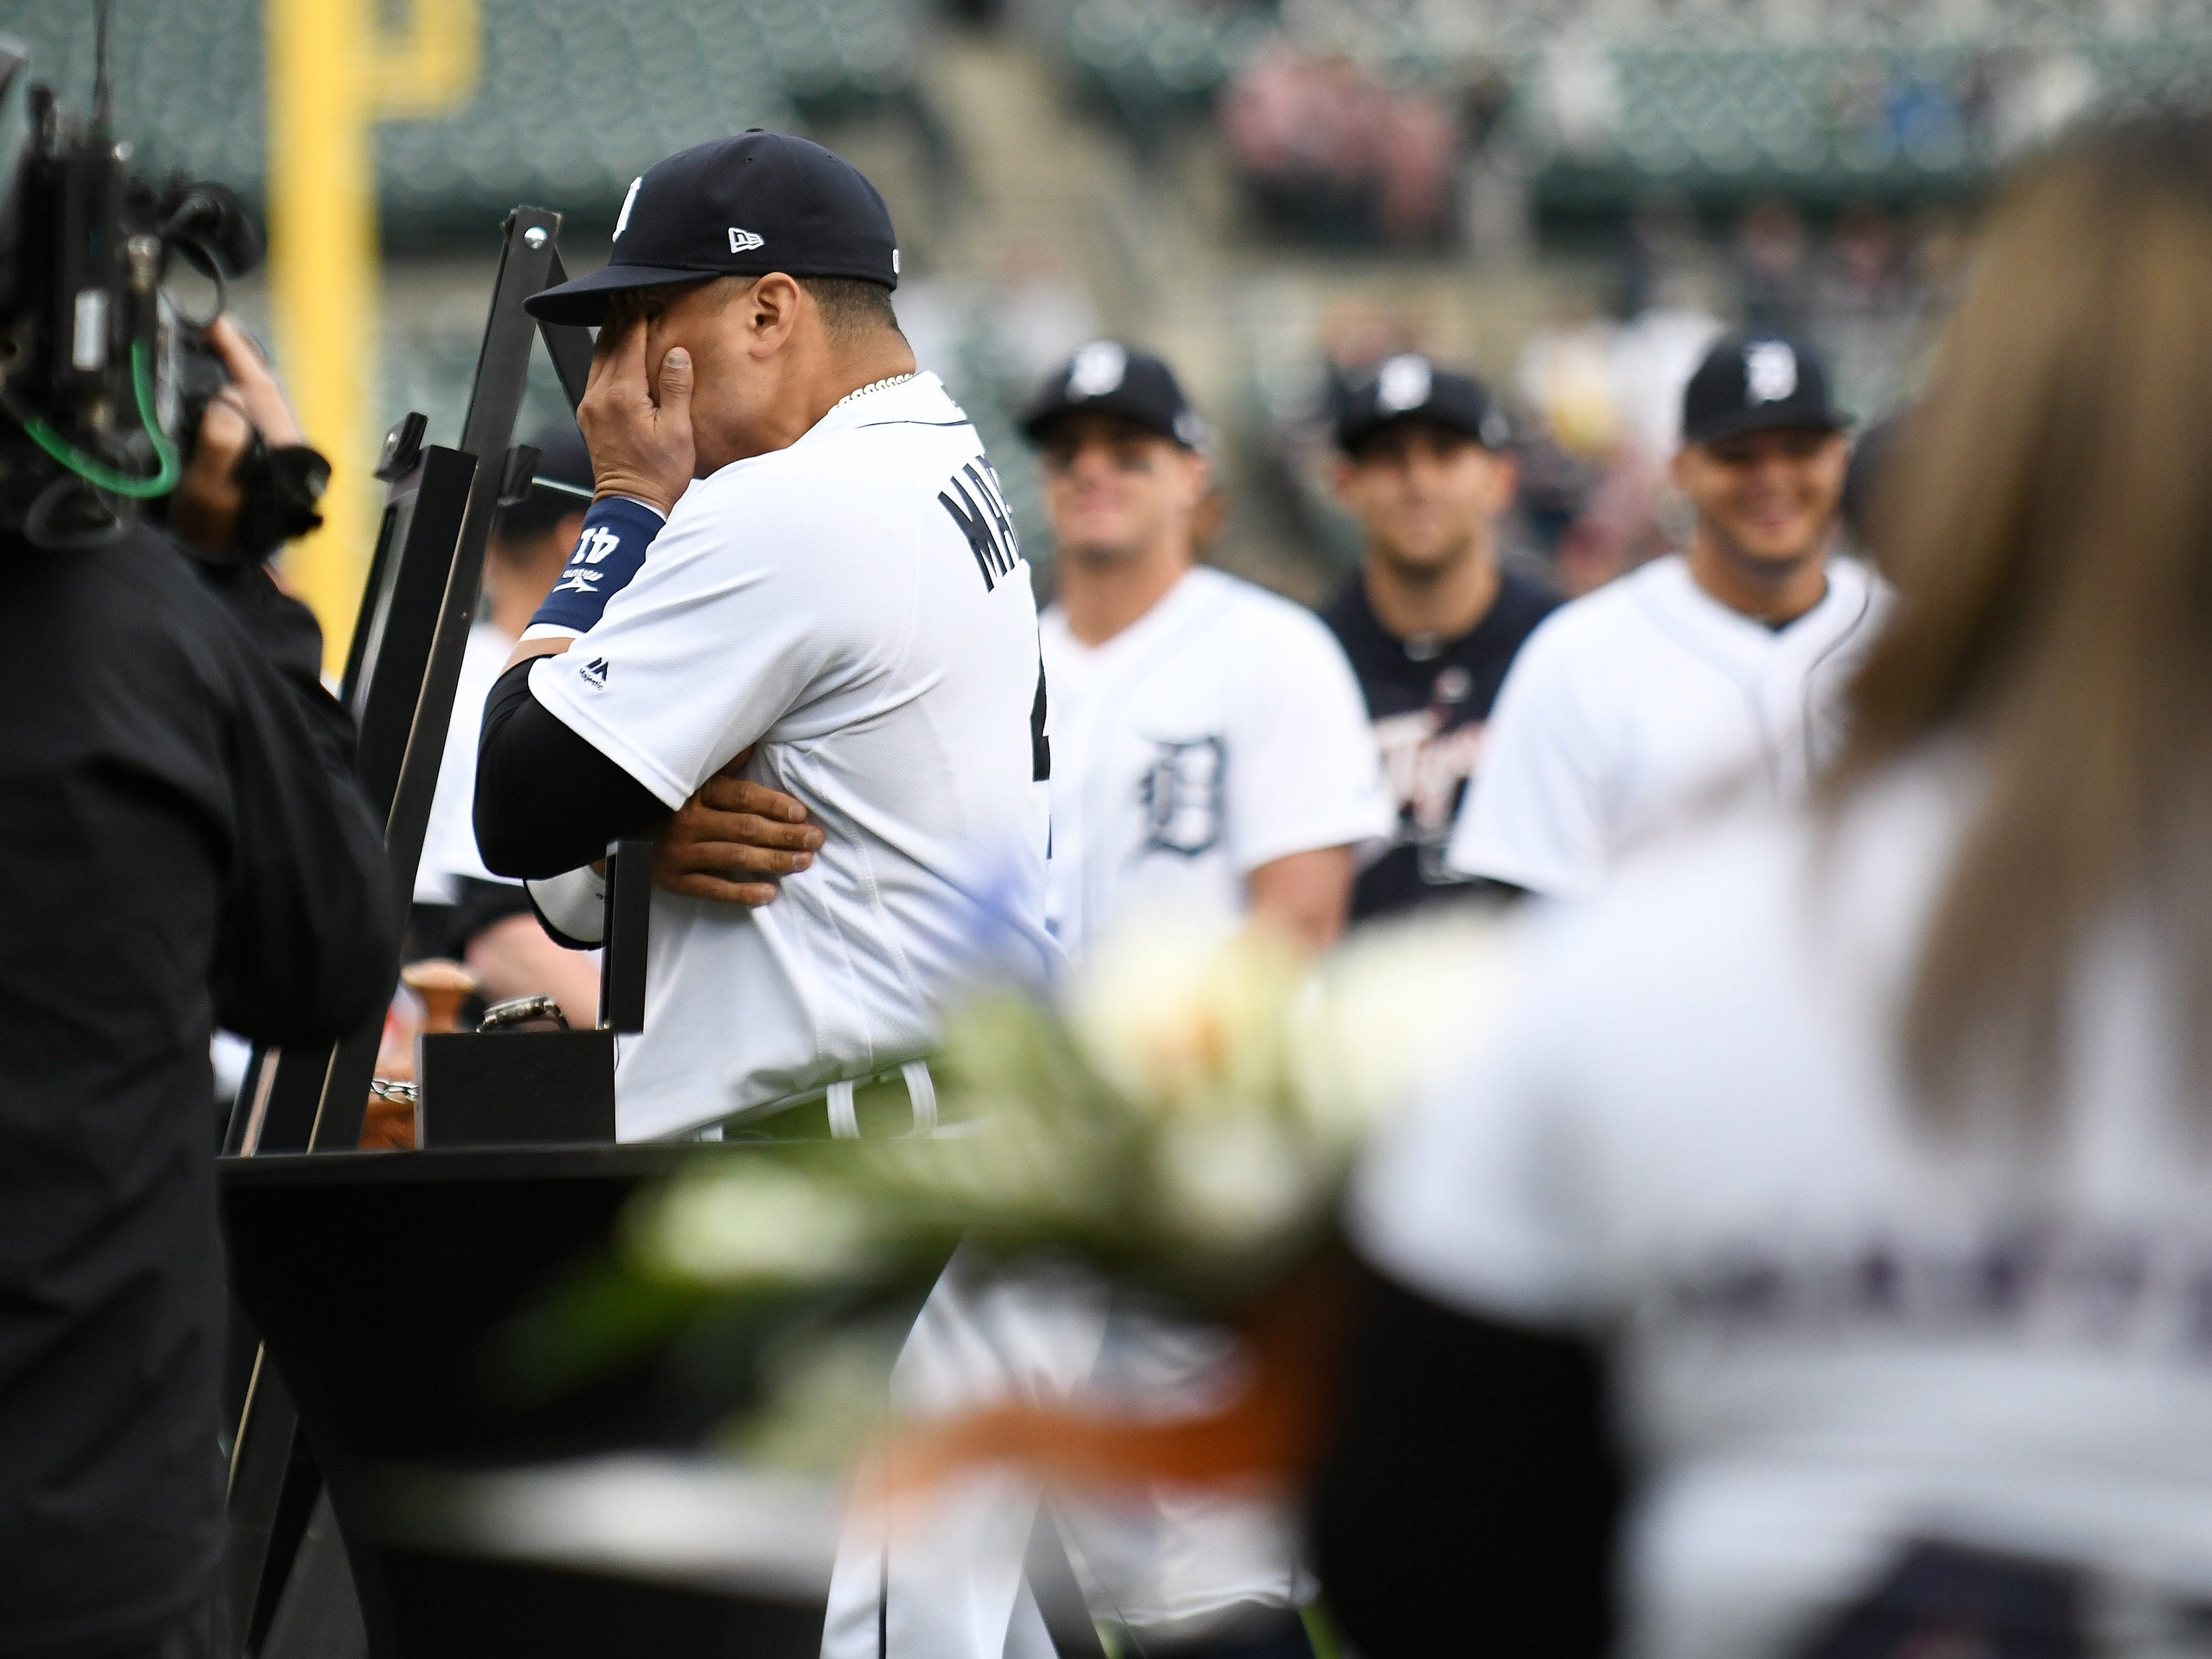 Victor Martinez has a moment after the special tribute ceremony celebrating his 16 year career.